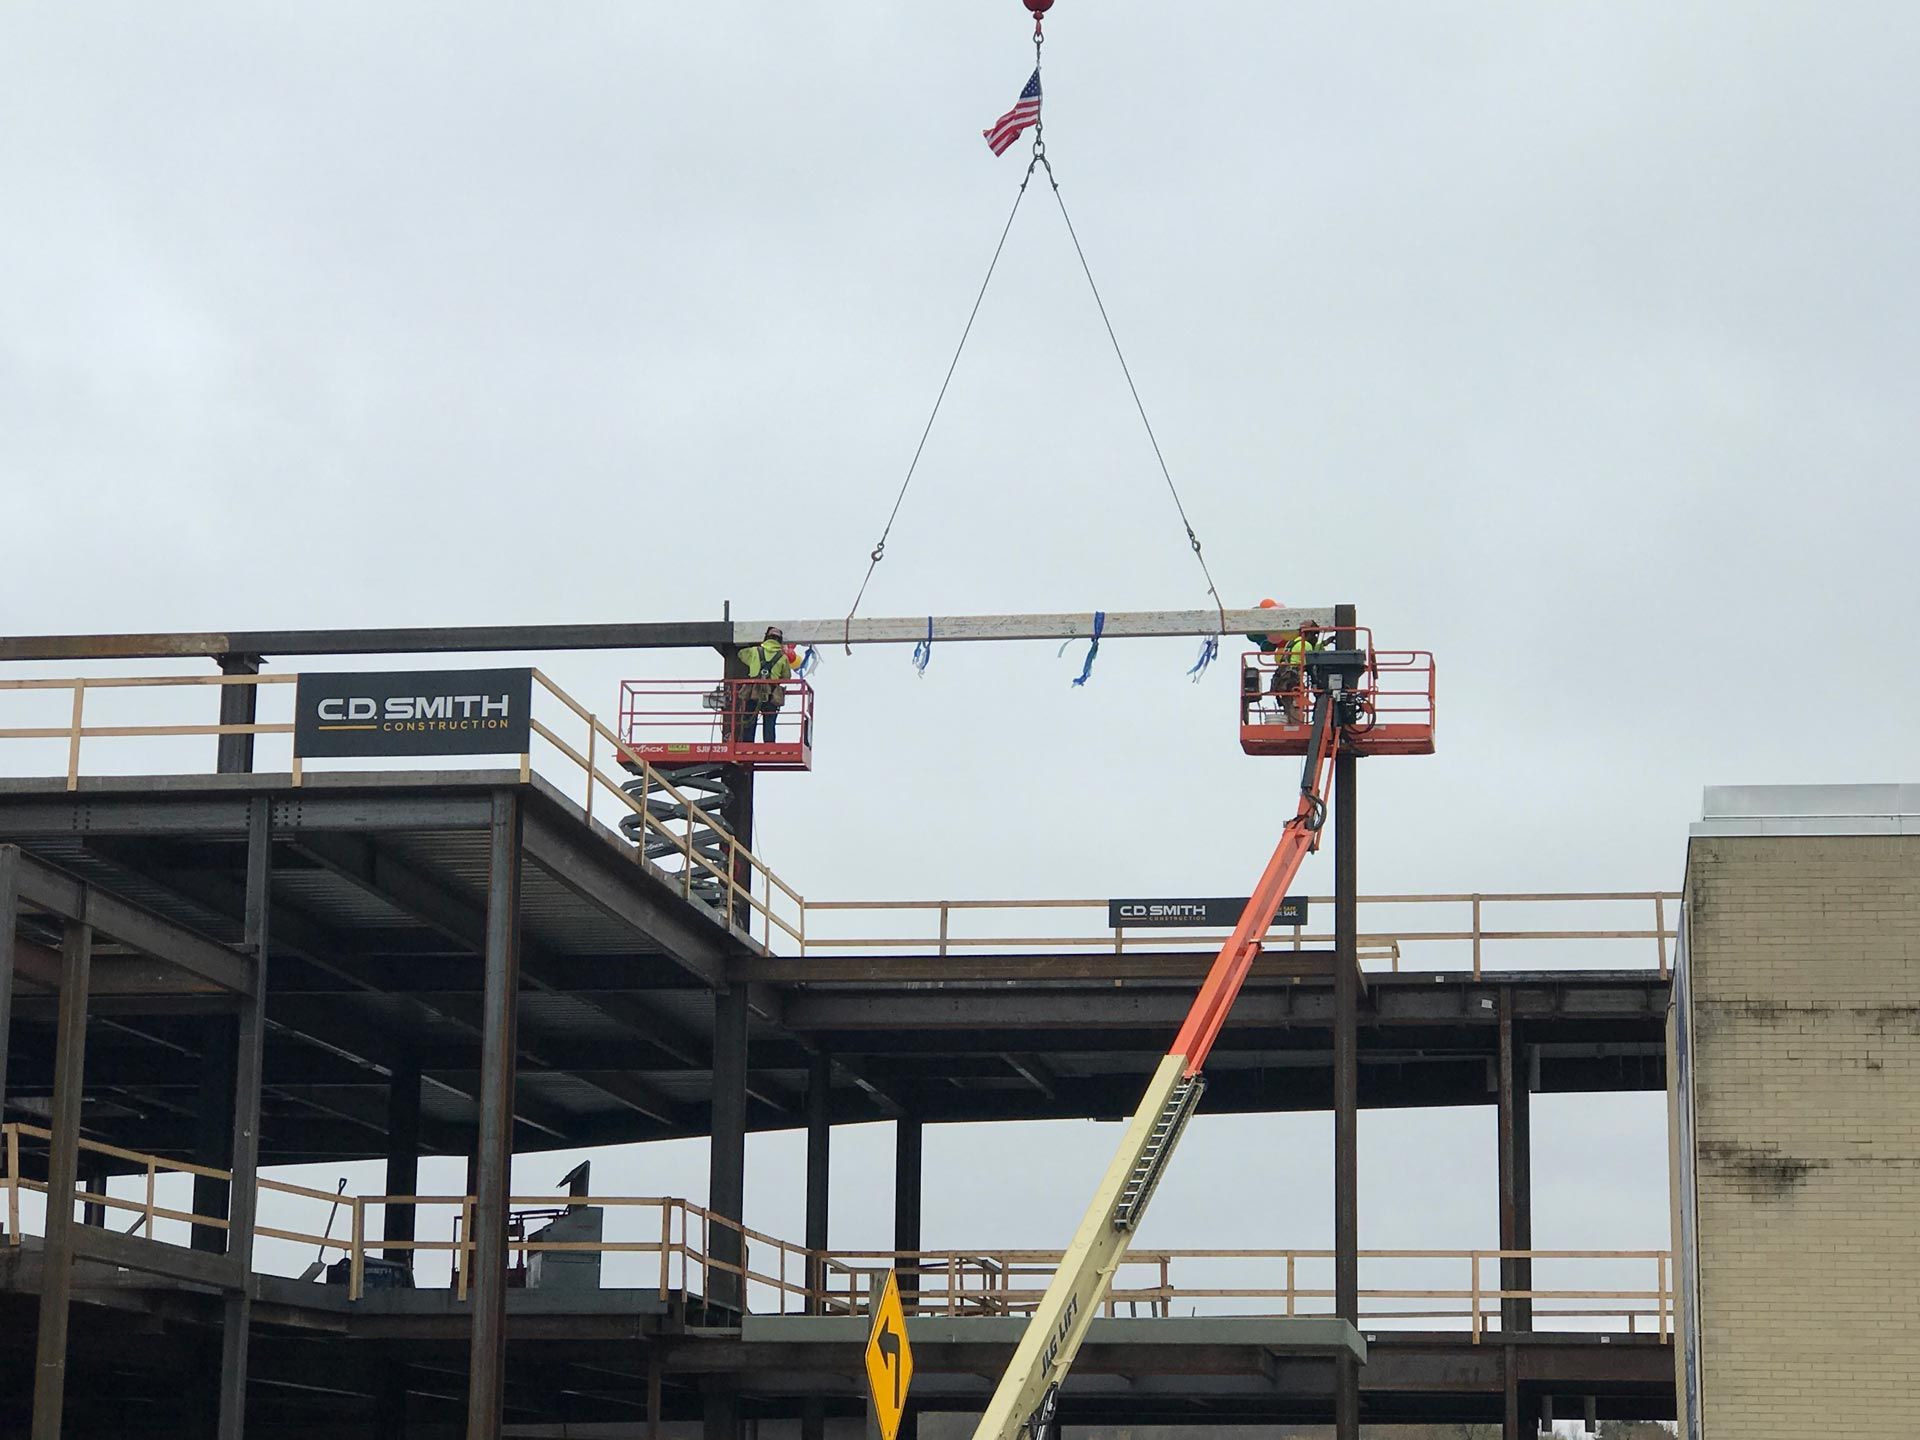 The Final Beam is placed on the new home of Gundersen St. Joseph's Hospital and Clinics